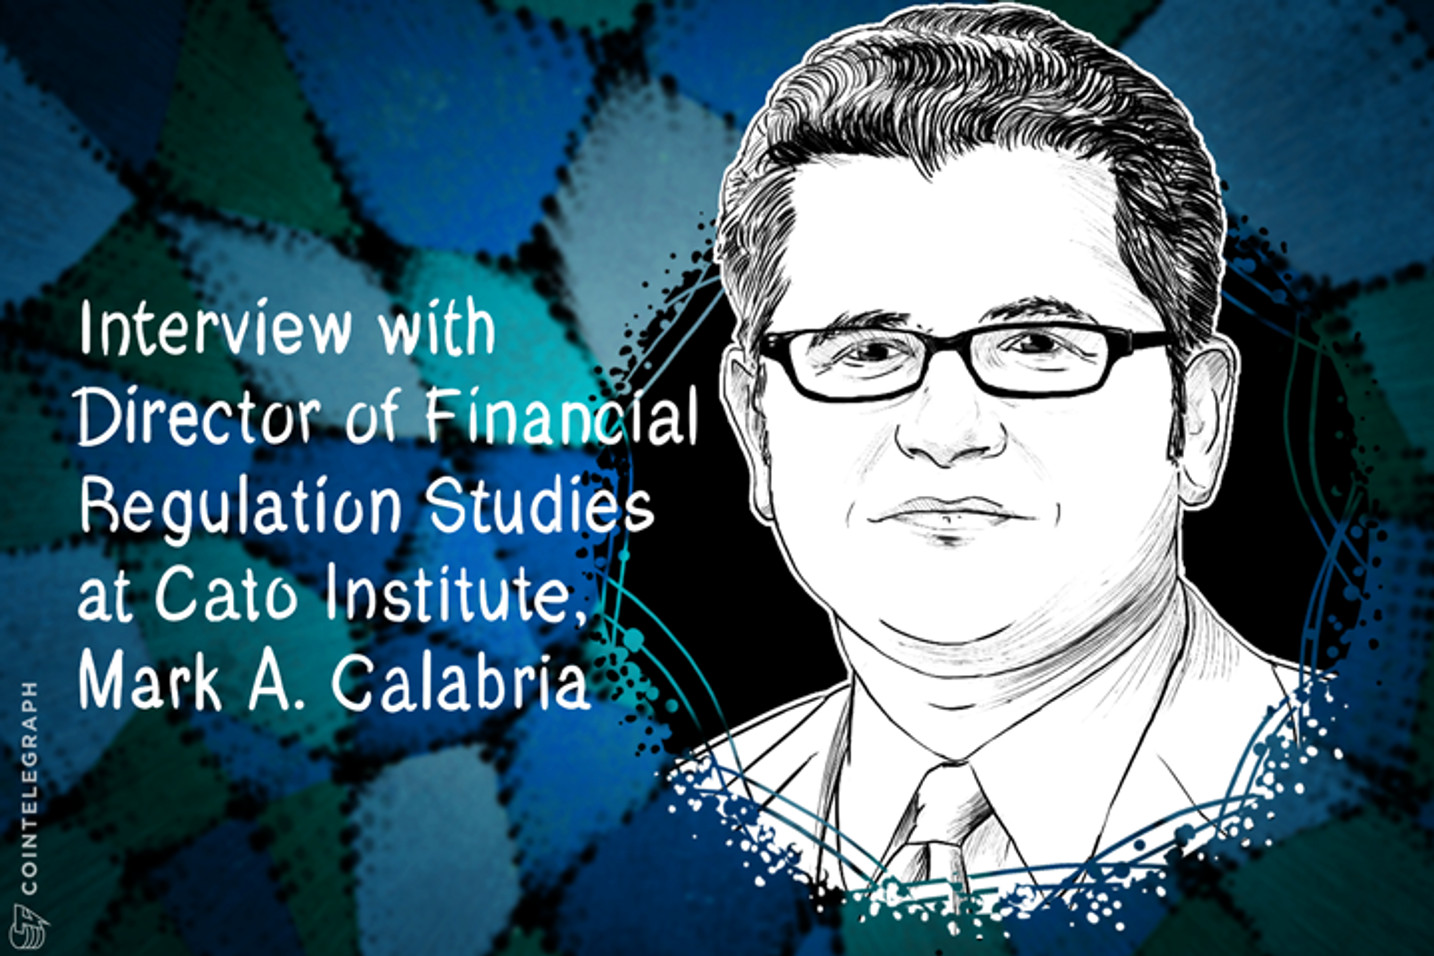 Cato Institute's Mark Calabria: 'Expect Another Crisis Within the Next Decade'